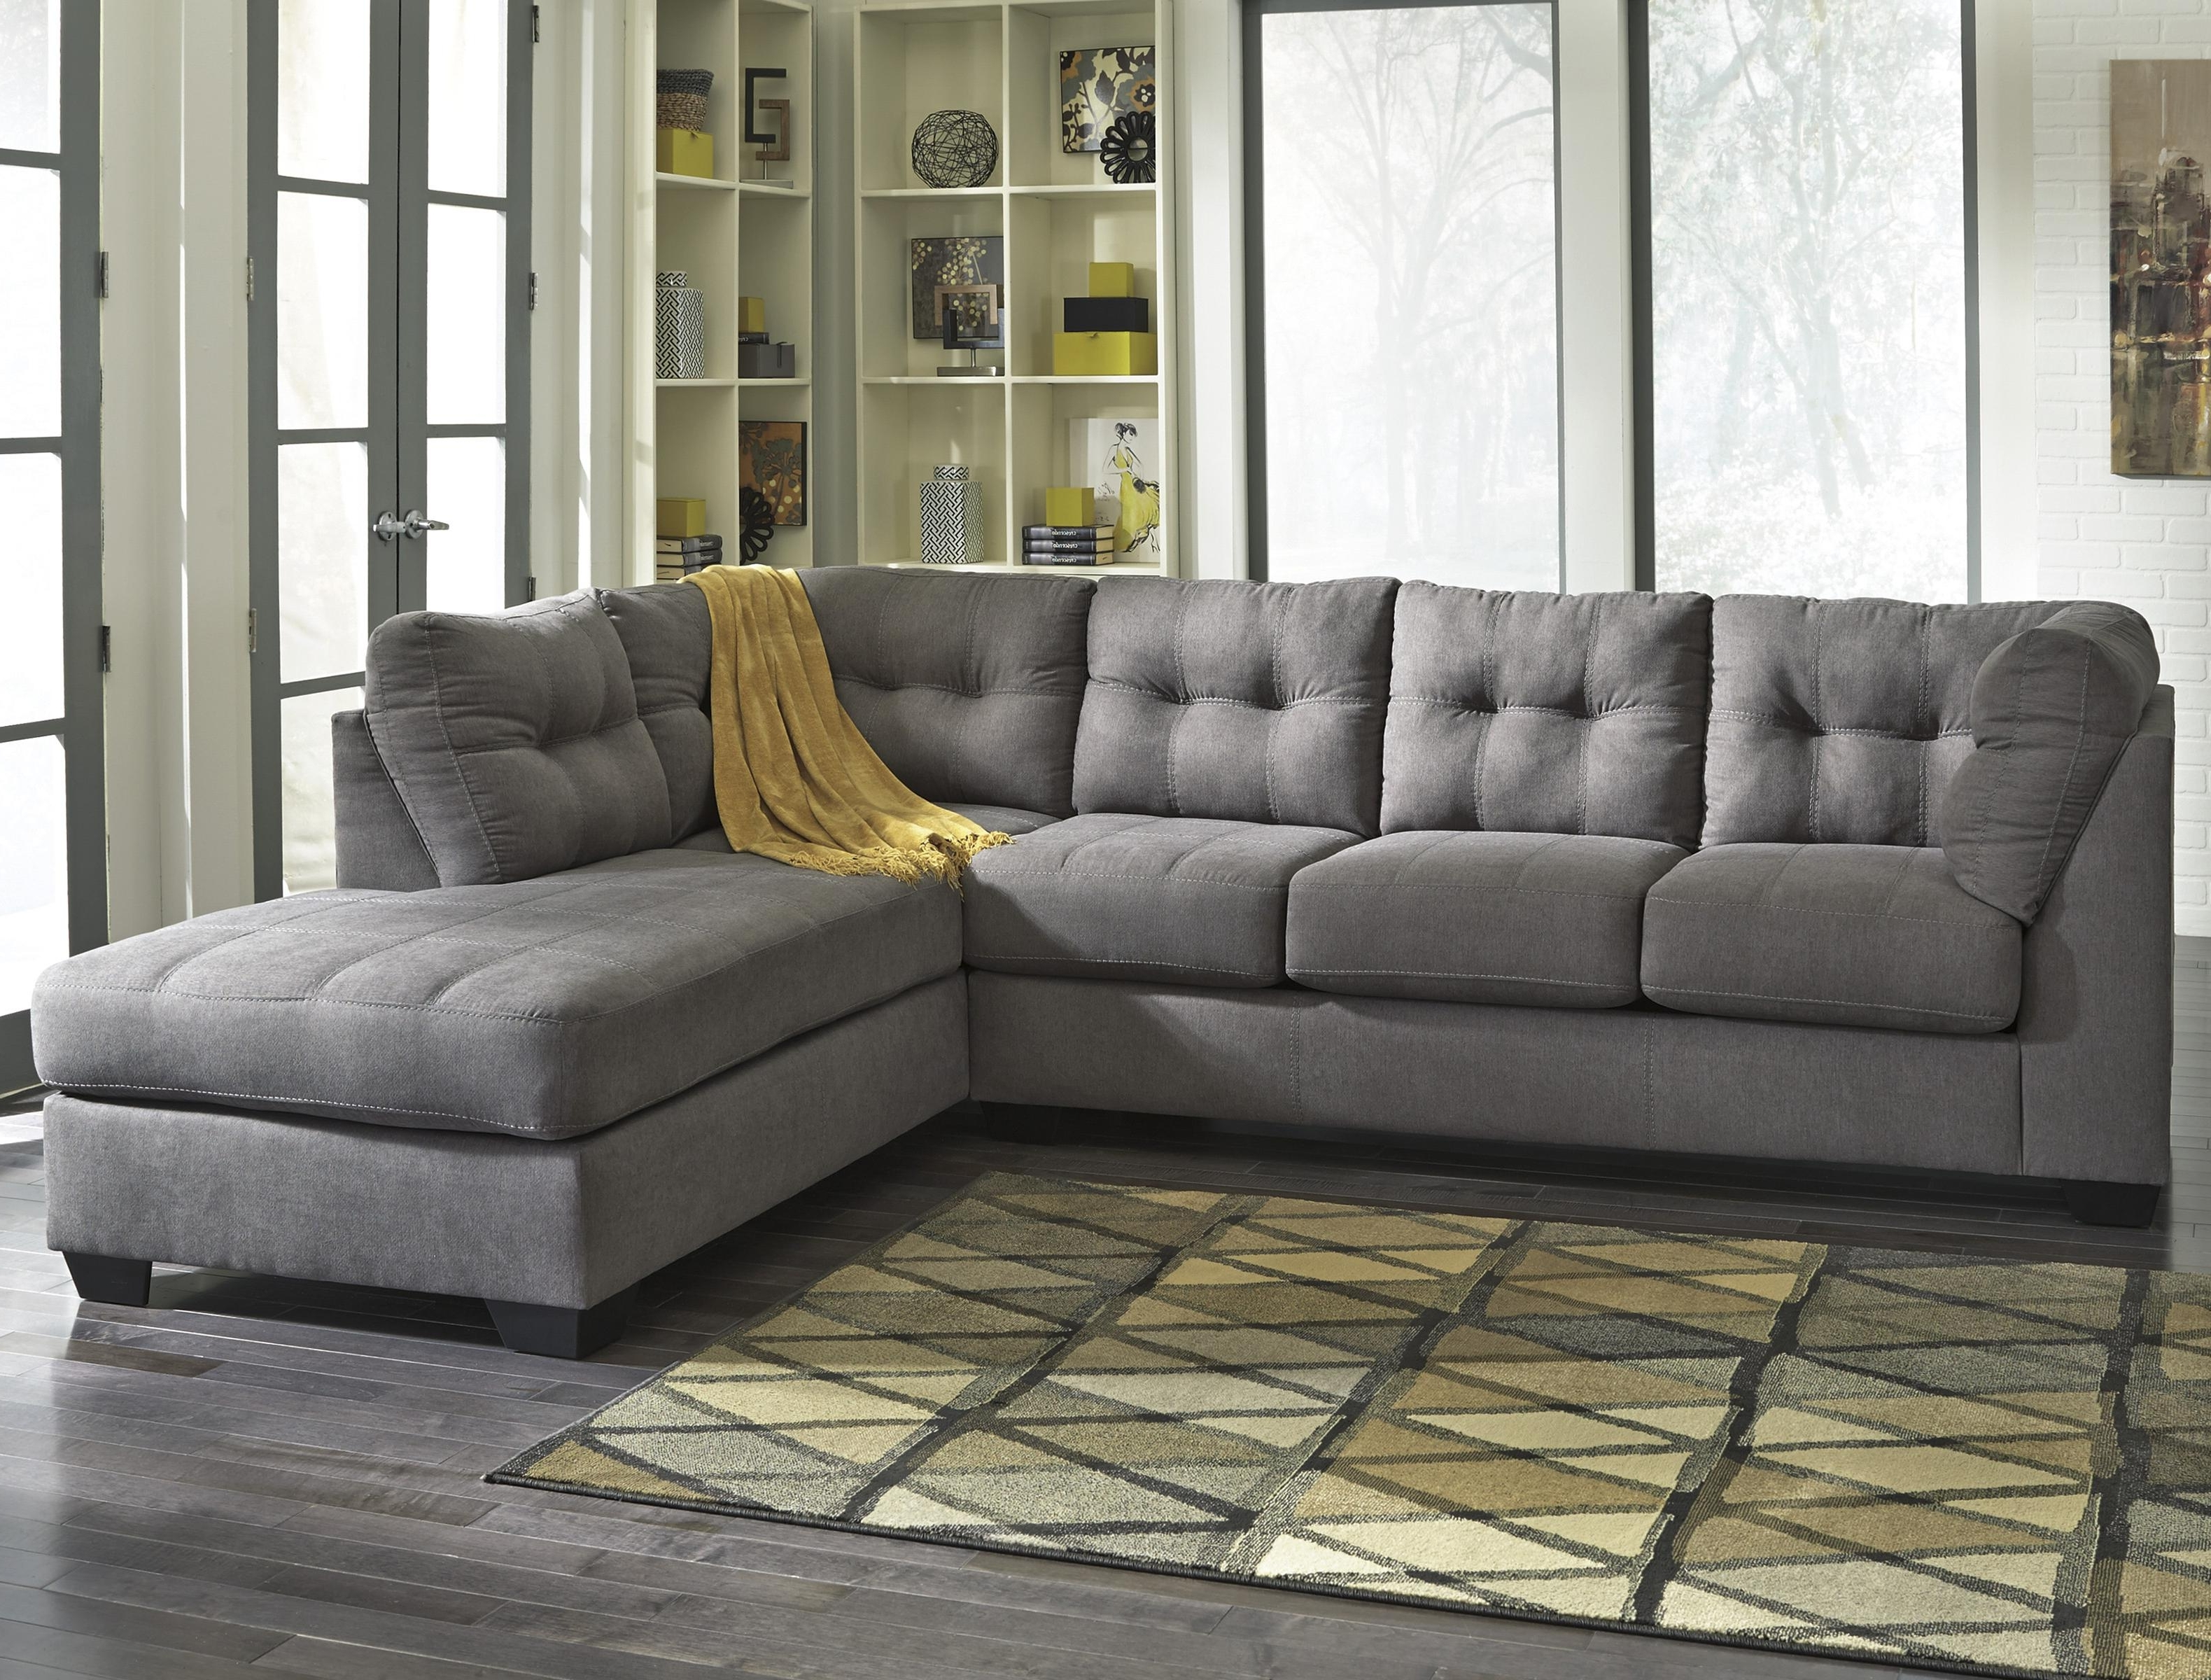 Widely Used Mississauga Sectional Sofas Pertaining To Inspirational Sectional Sofas Portland Oregon 66 On Sectional (View 20 of 20)